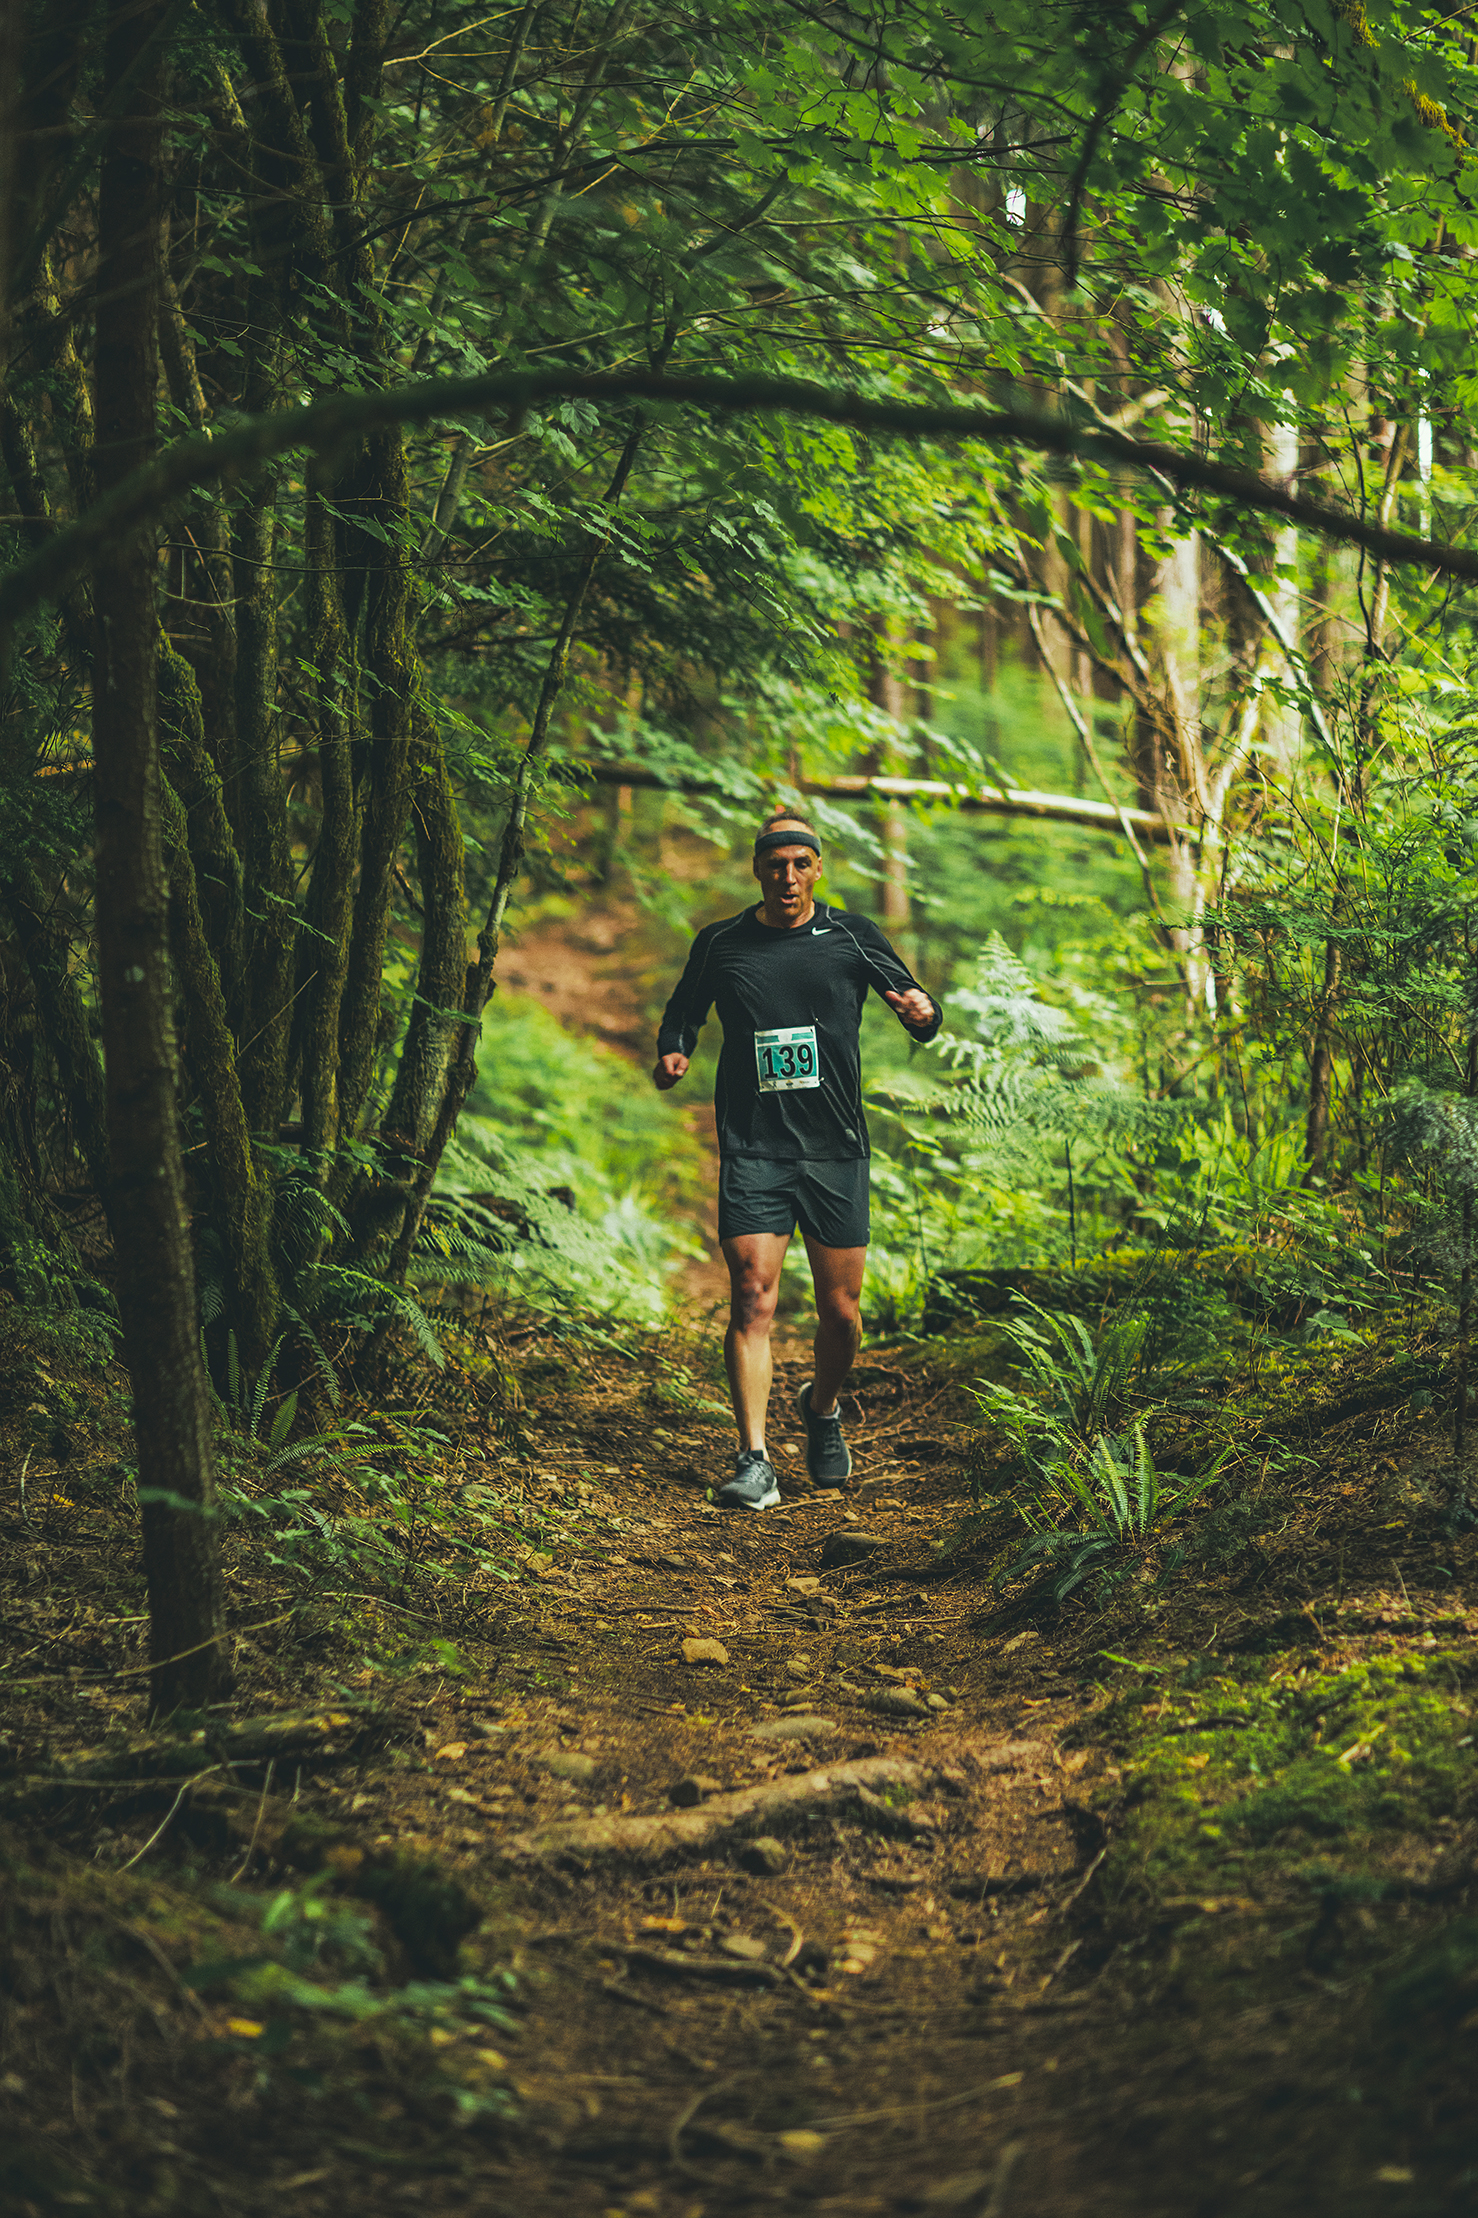 Fraser Valley Trail Races - Bear Mountain - IMG_1859 by Brice Ferre Studio - Vancouver Portrait Adventure and Athlete Photographer.jpg